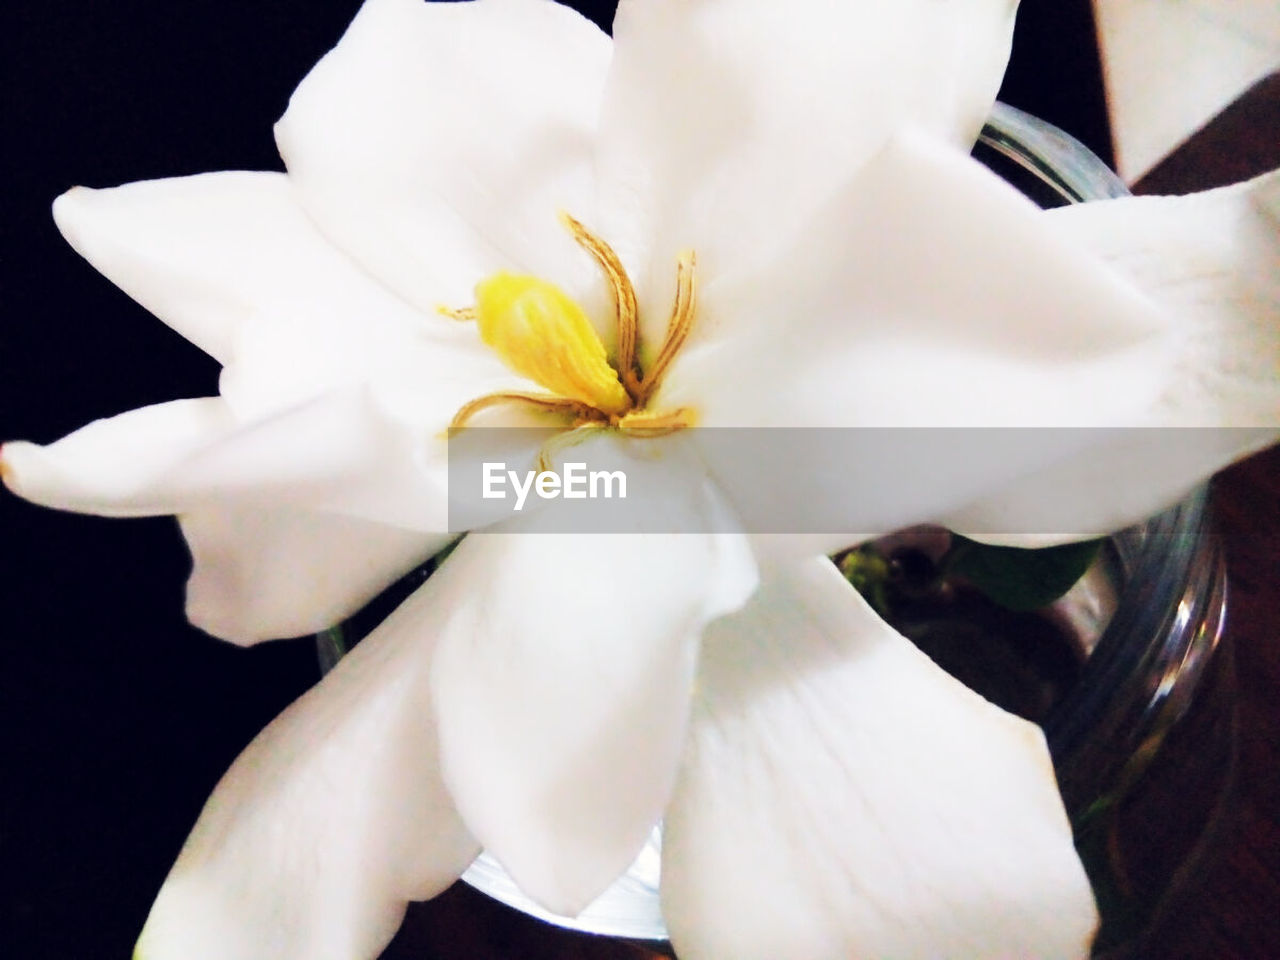 flower, petal, flower head, beauty in nature, fragility, white color, nature, close-up, freshness, growth, one person, outdoors, frangipani, black background, day